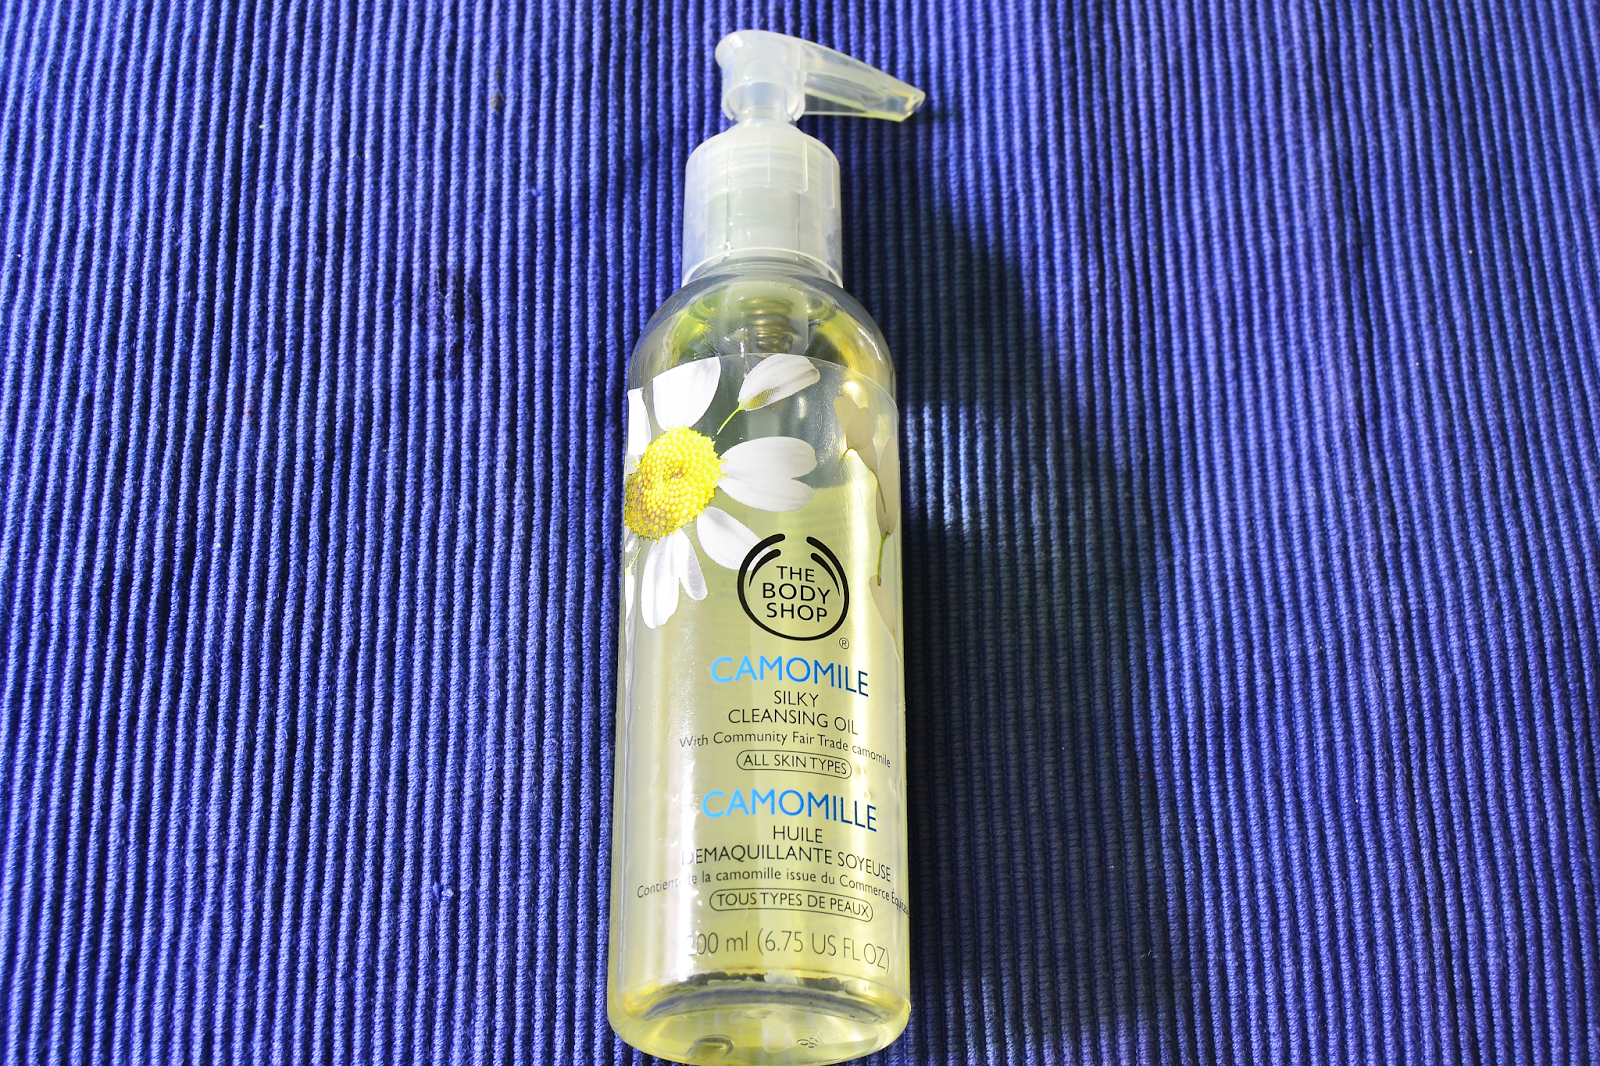 Camomile Silky Cleansing oil, The Body Shop